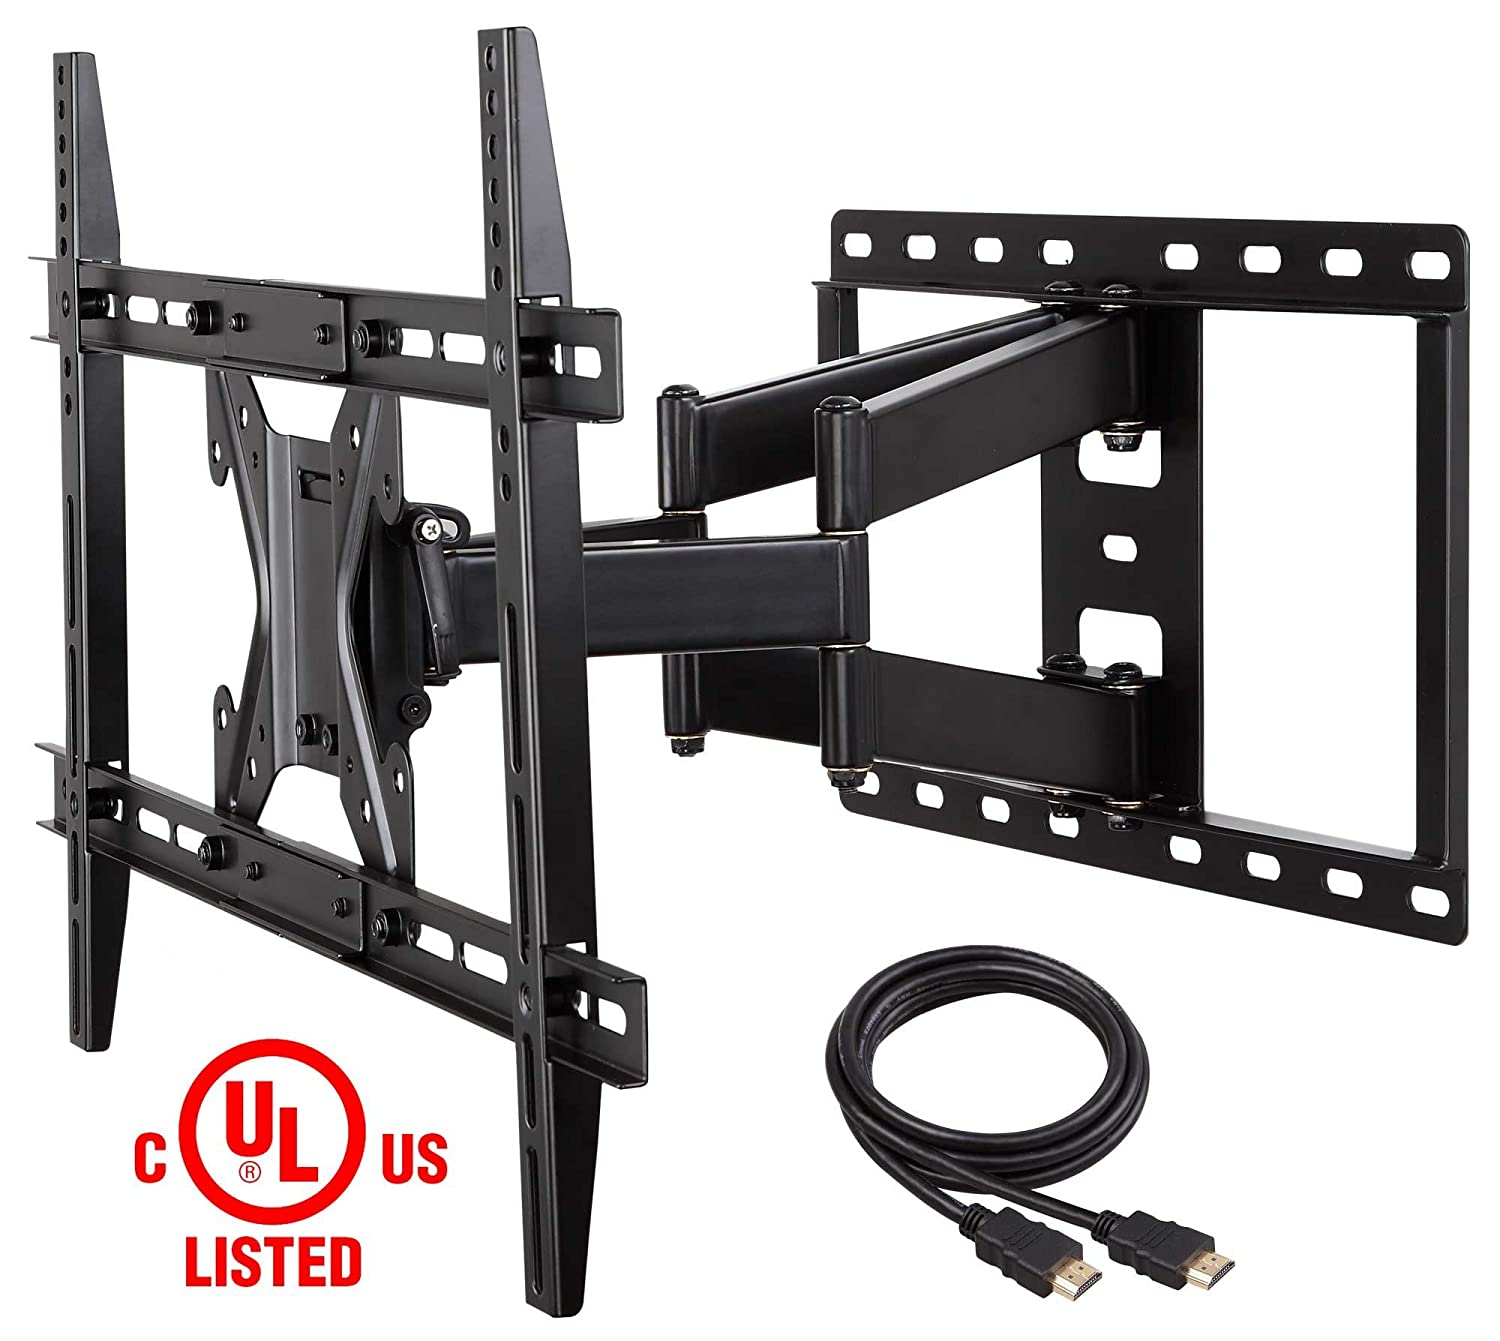 Top 10 Best Full Motion Tv Mount Reviews 2016 2017 On